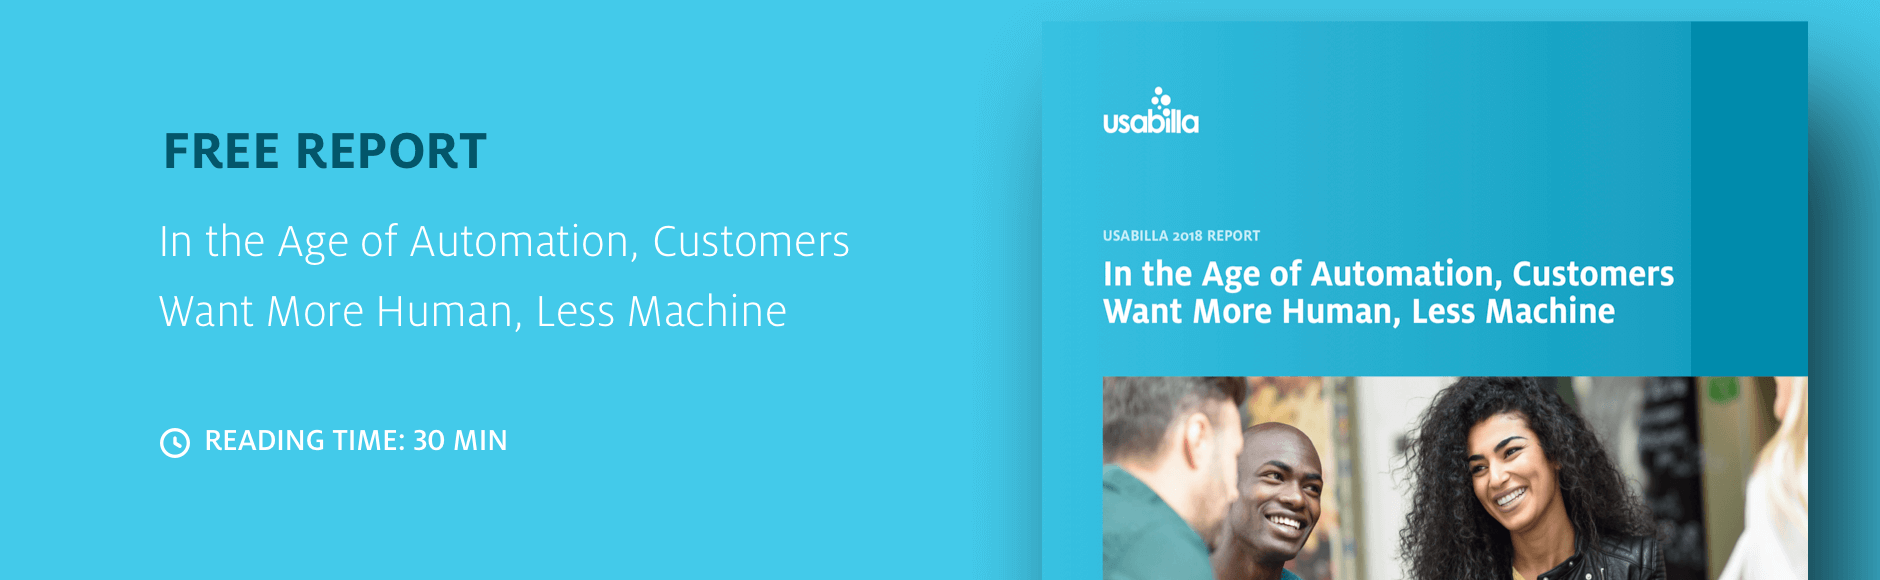 Free Report - In The Age of Automation, Customers Want More Human, Less Machine